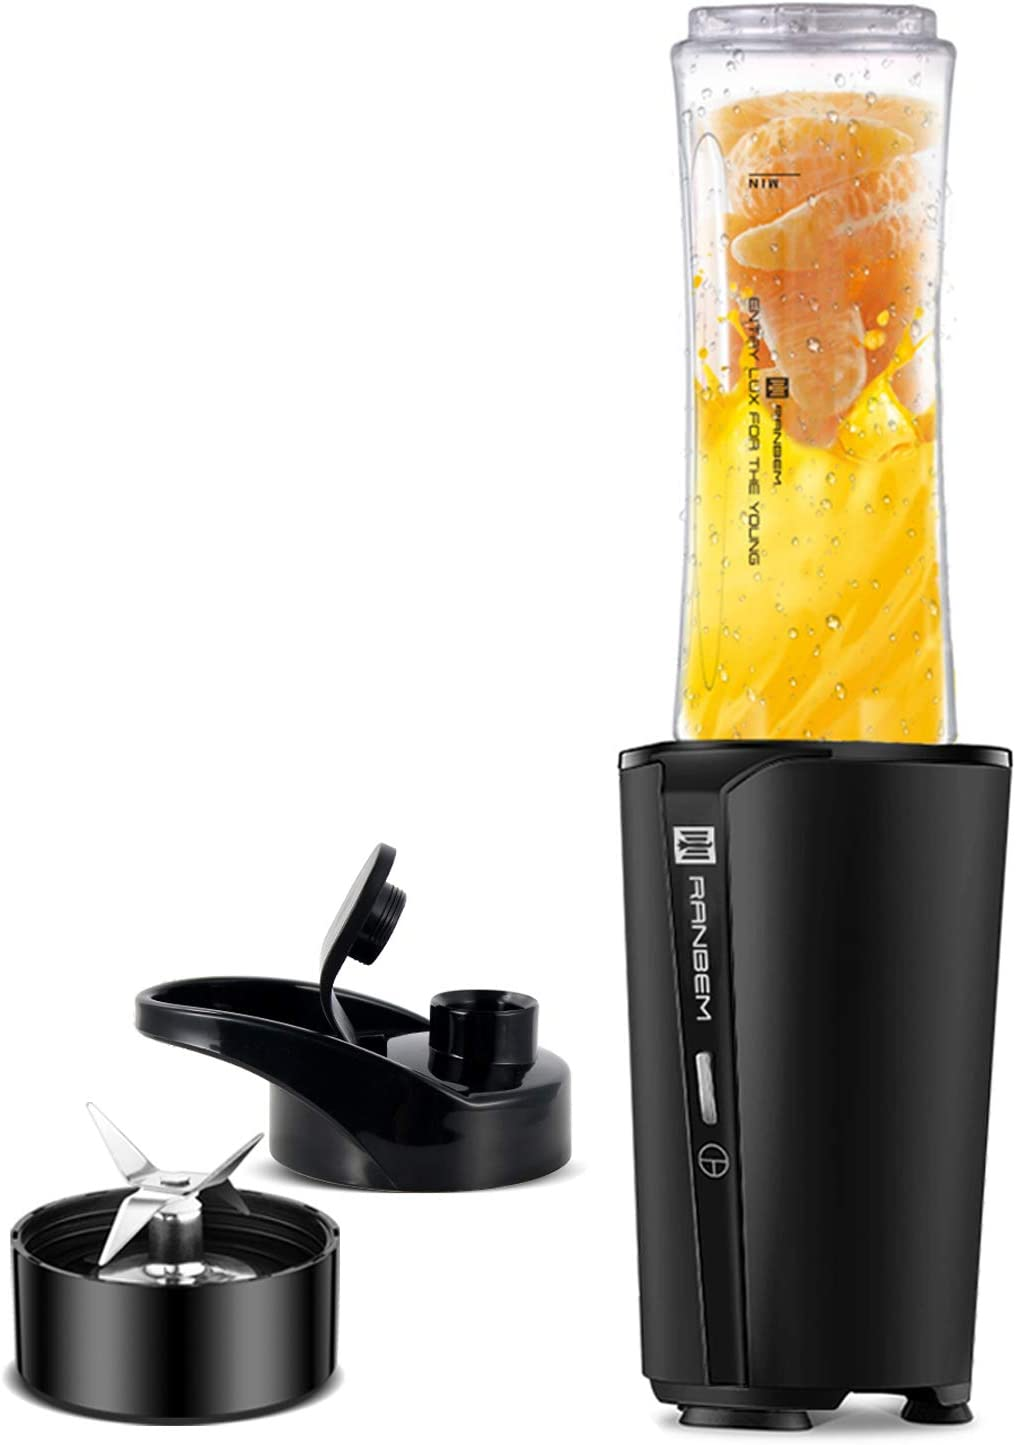 Bullet Blender for Shakes and Smoothies – Small Personal Blender for Kitchen Fruit Juice Milkshakes Single Serve with 20oz Travel Cups, Portable Lid, 300W